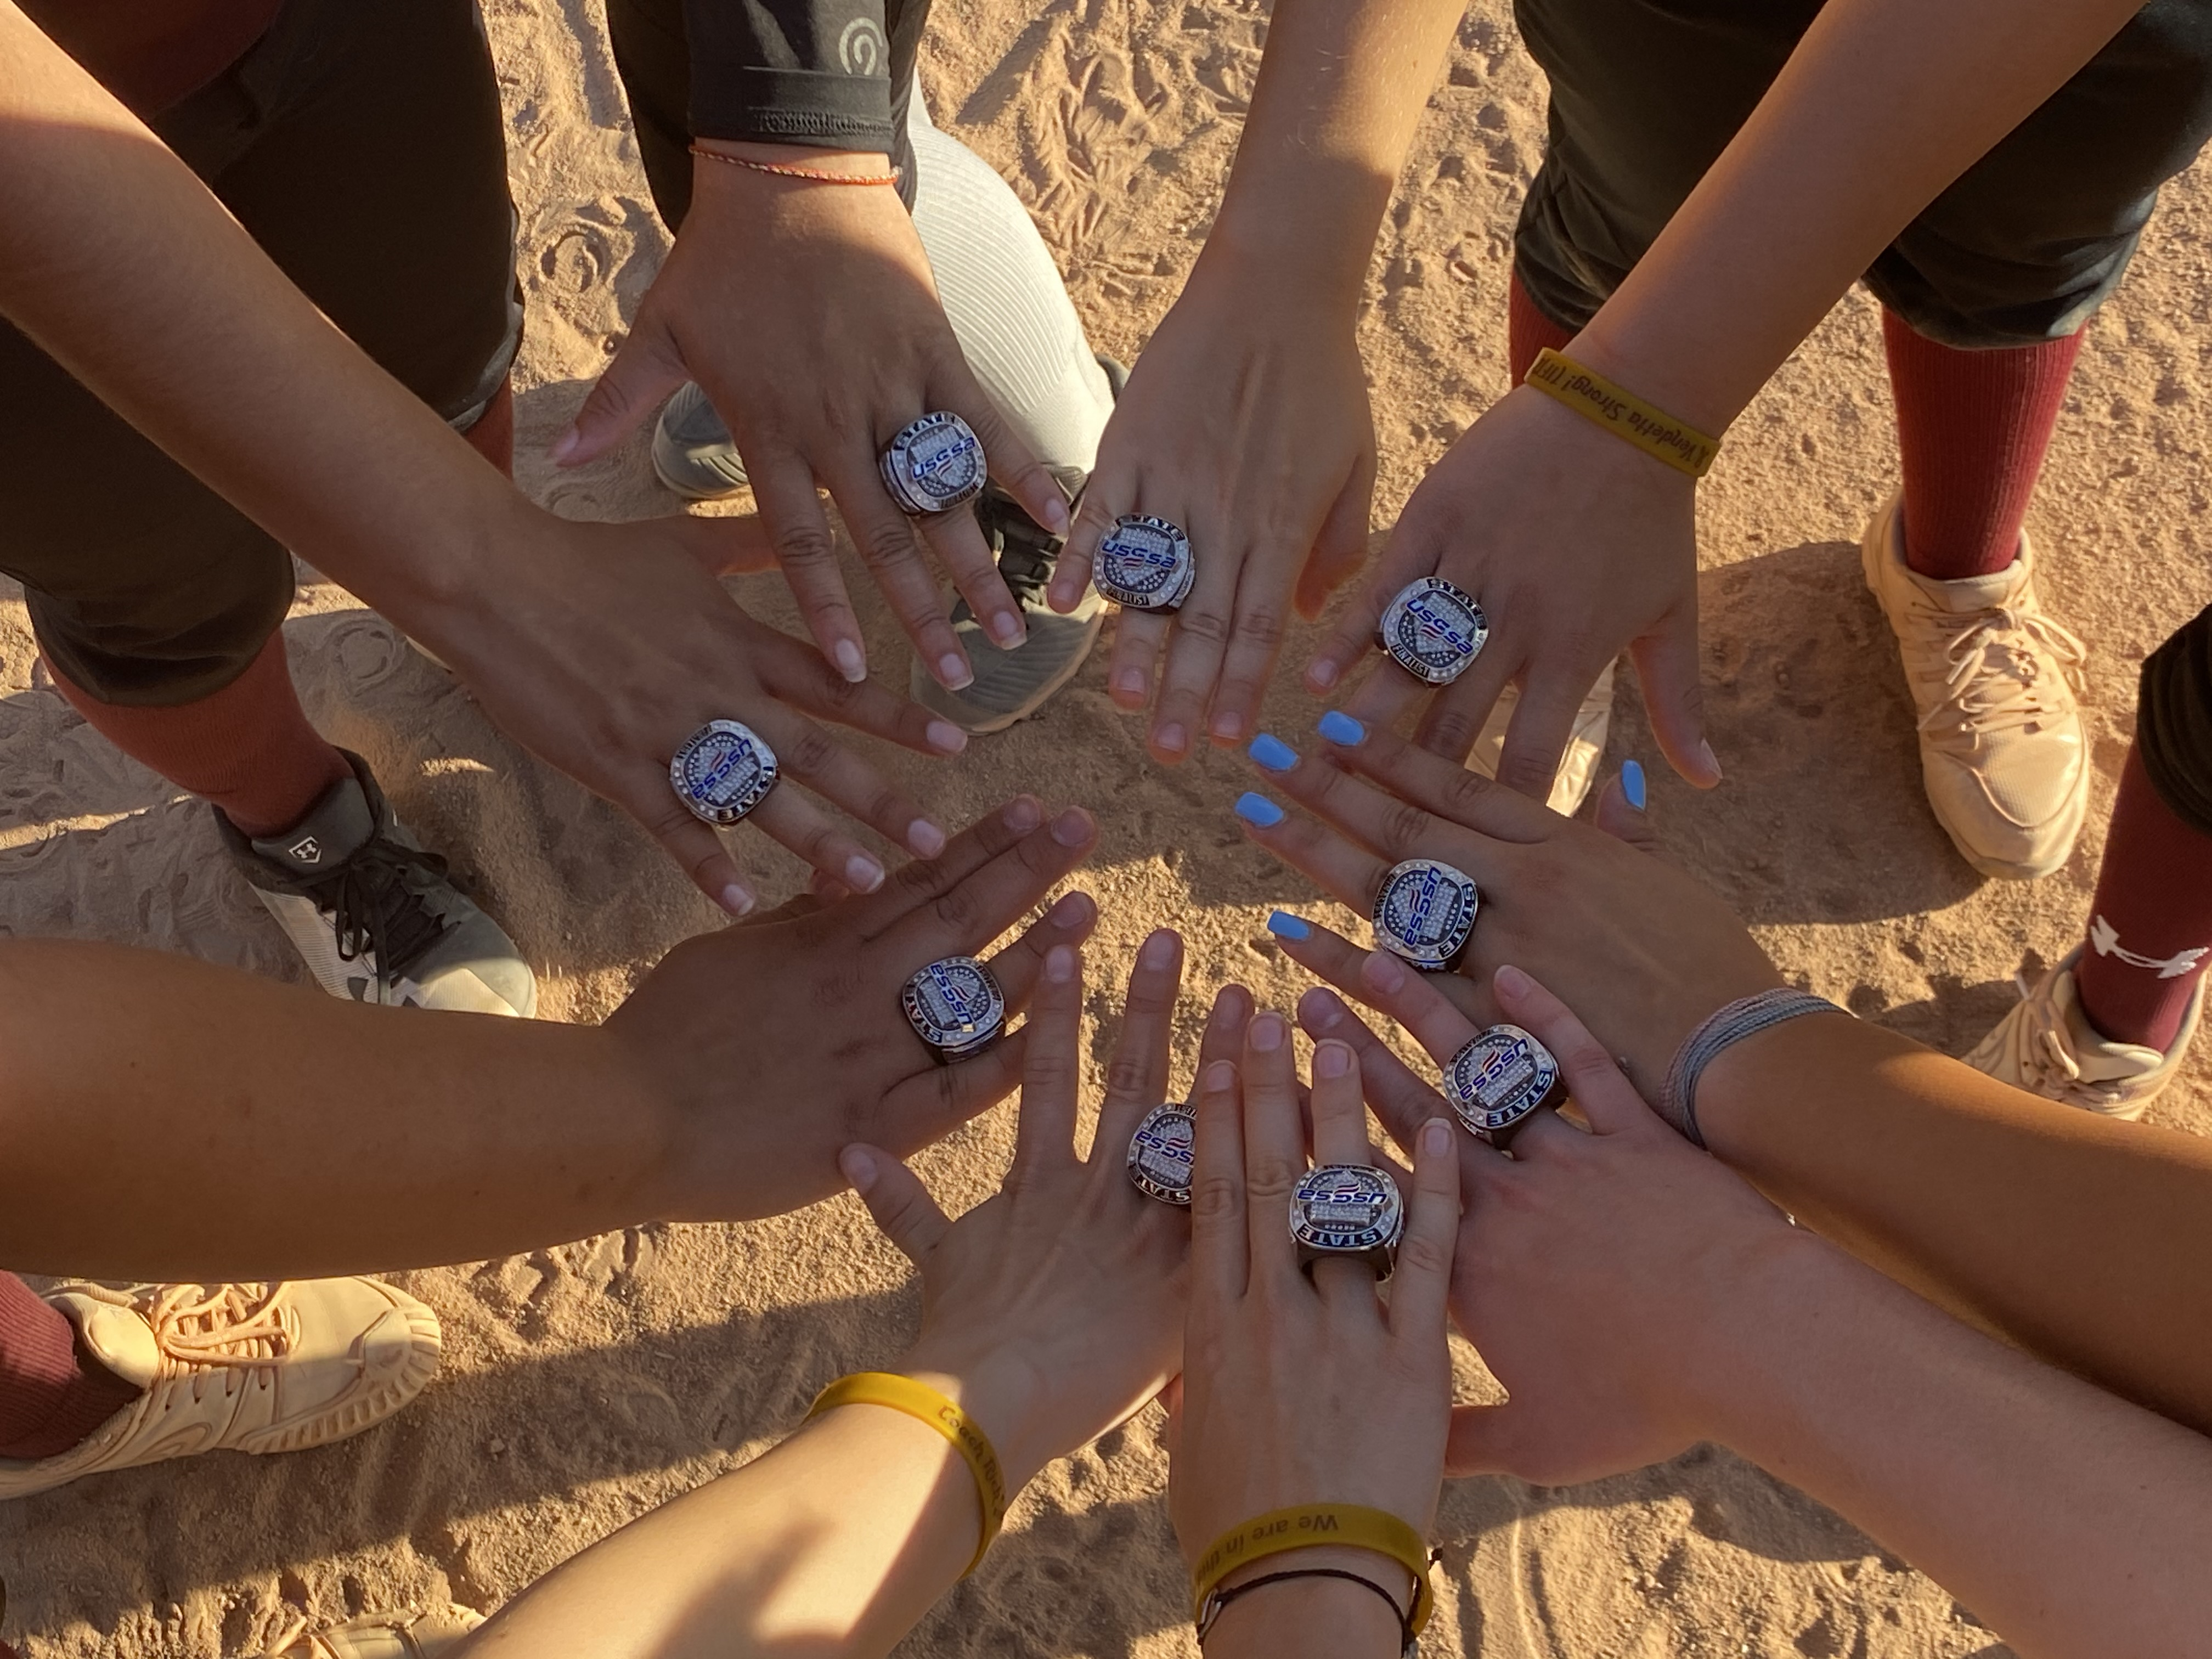 State Champs Rings